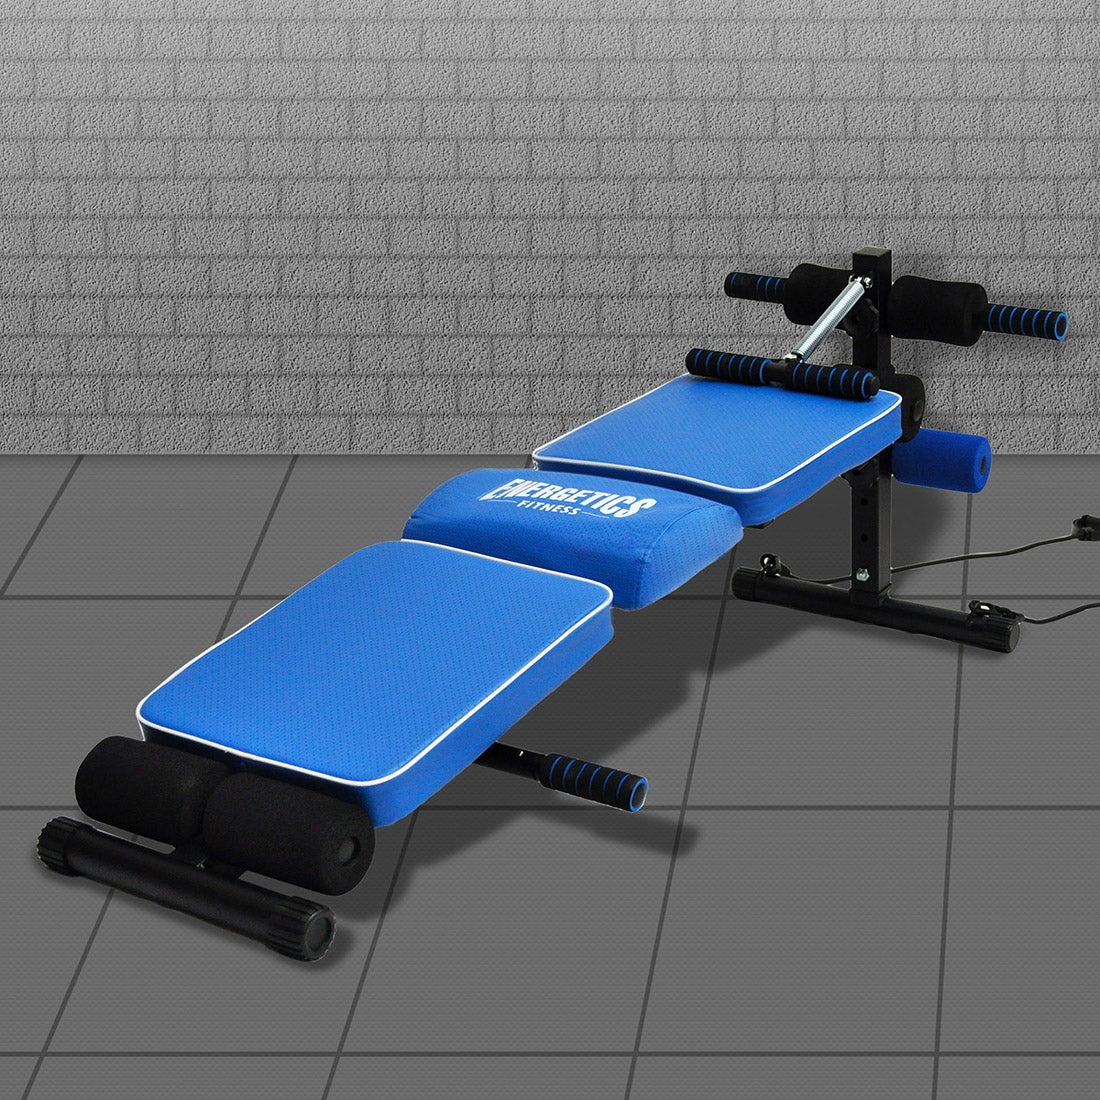 Energetics Sit Up Bench - Crunch Fitness Exercise Back Support Bench Home Gym